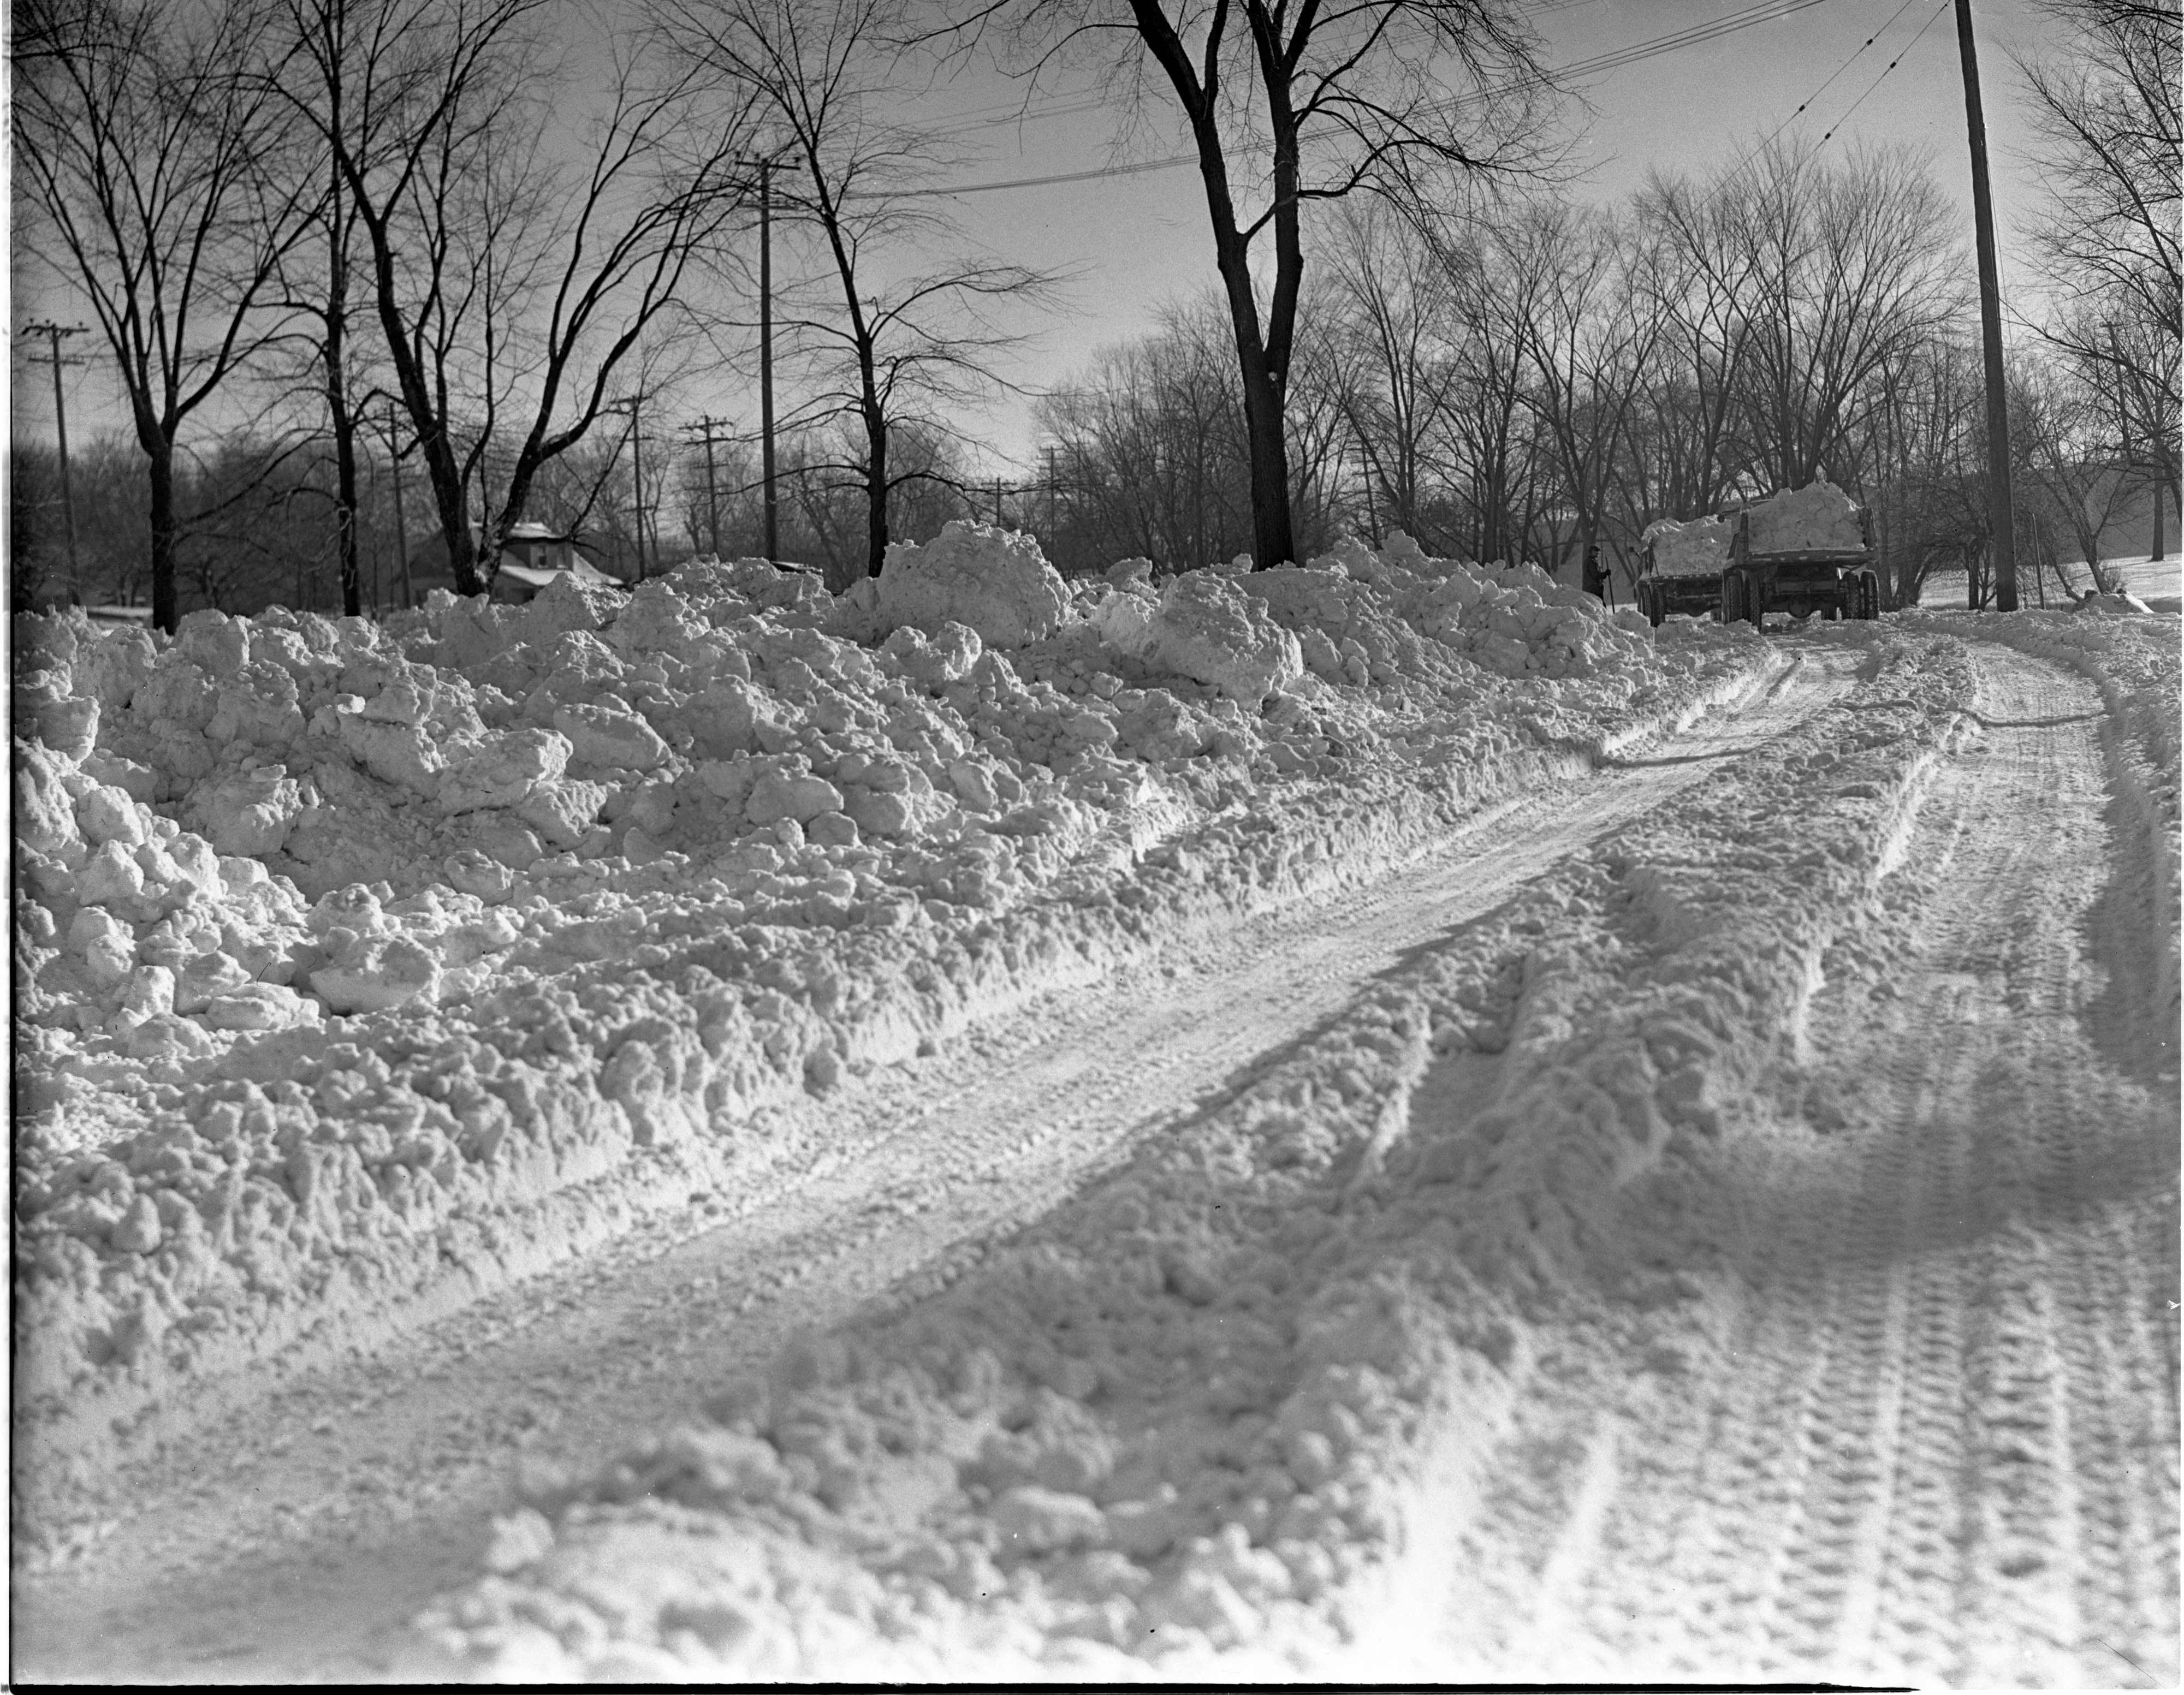 Snow Removal Trucks Haul Snow From Ann Arbor Roads To Huron River, January 1939 image